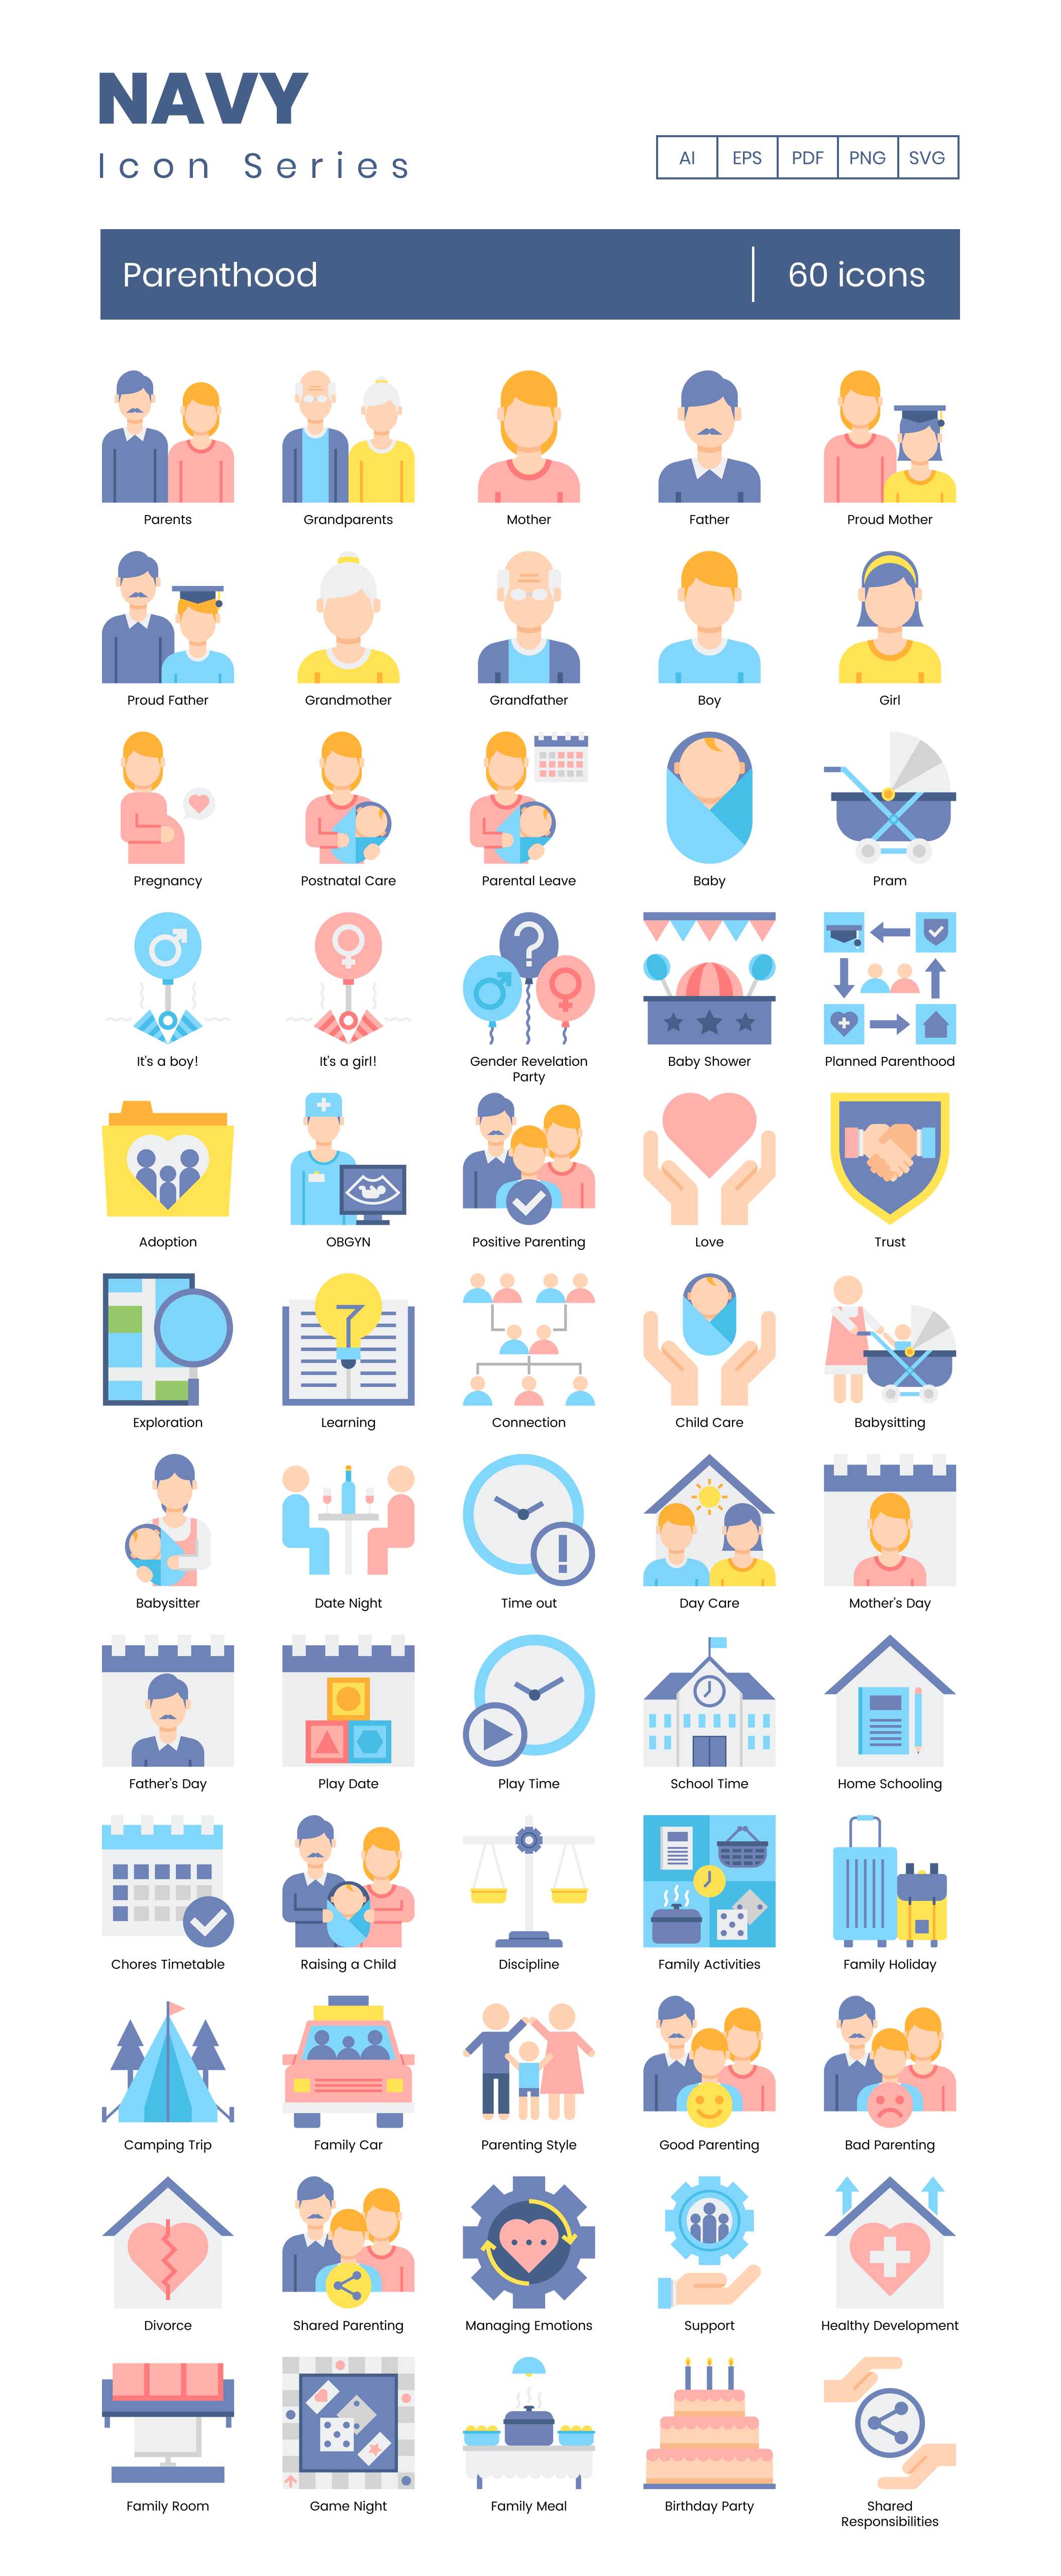 Parenthood Vector Icons Preview Image